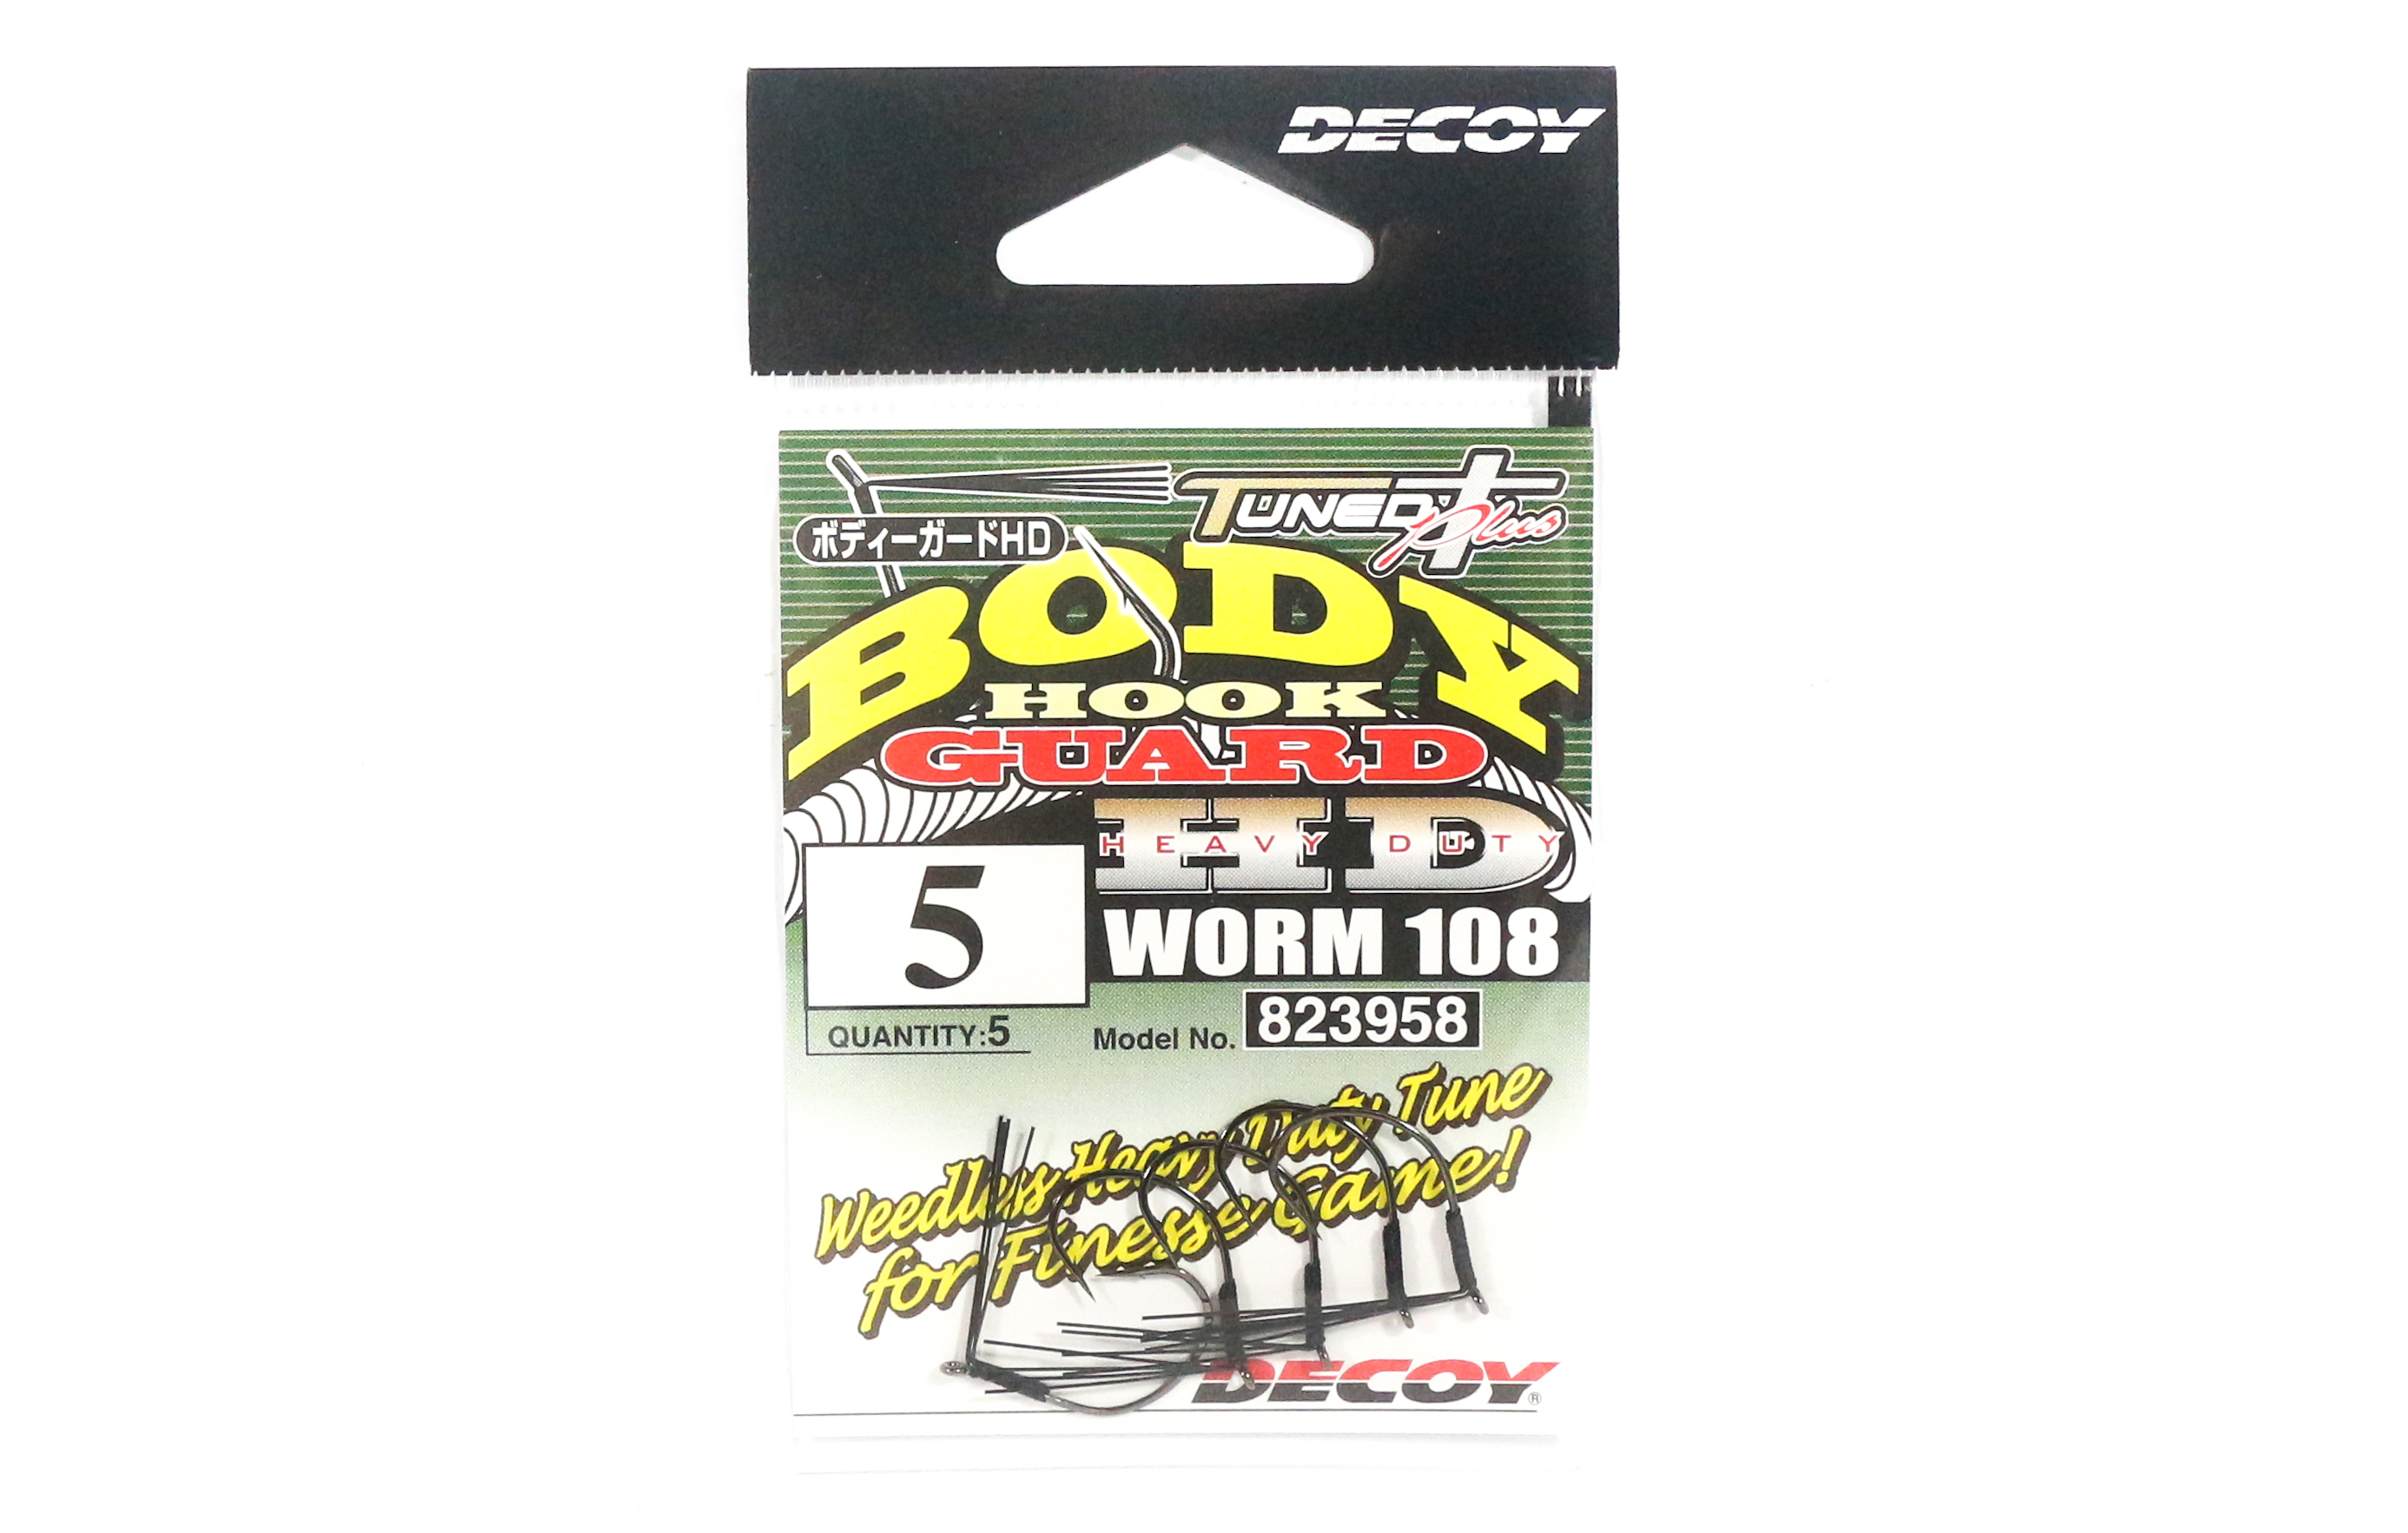 Decoy Worm 108 Body Guard HD Hook for Wacky Rig Size 5 (3958)